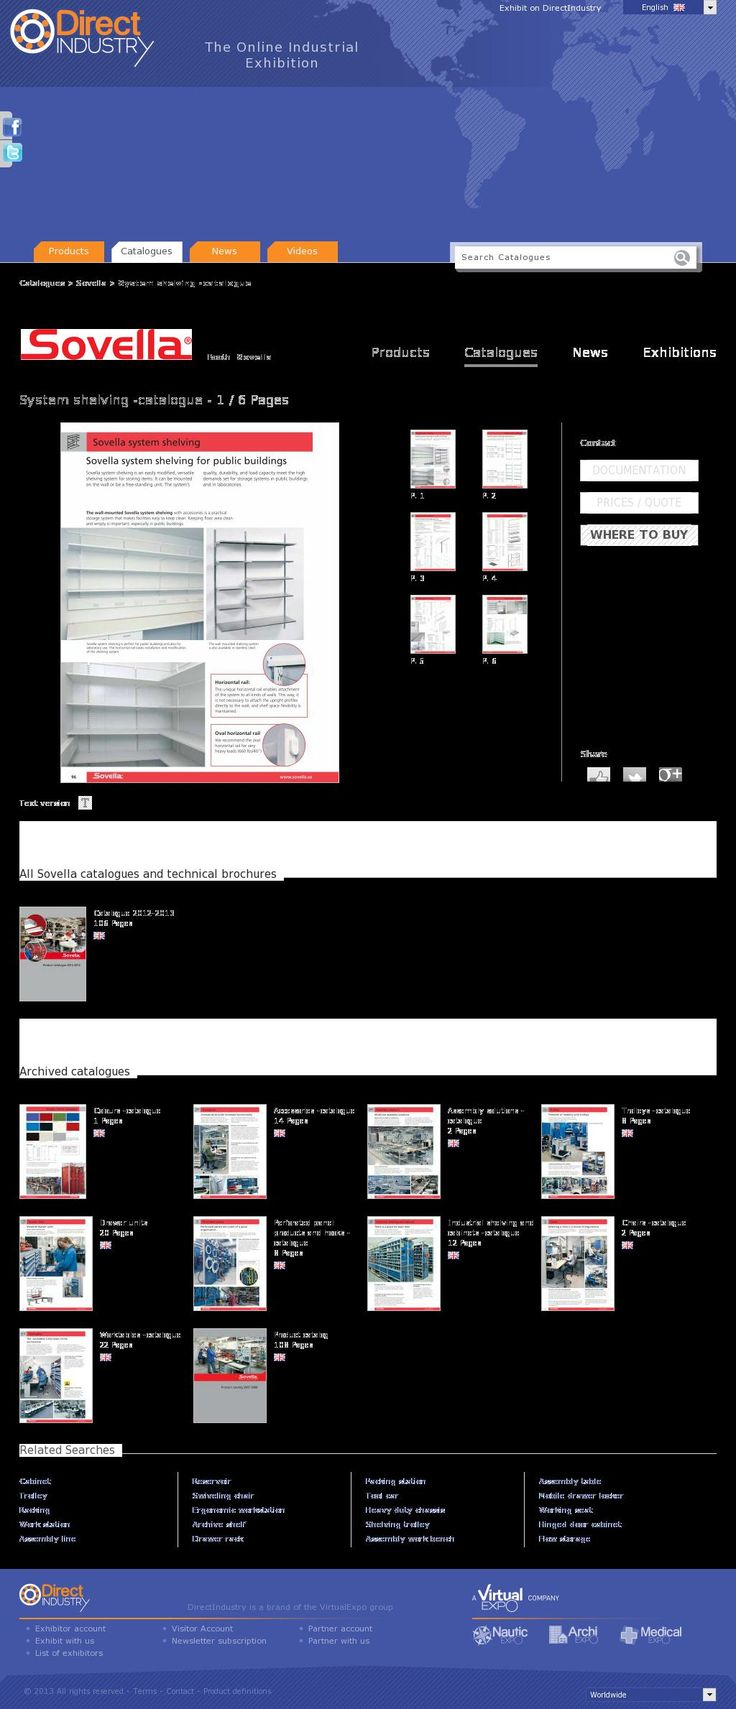 The website 'http://pdf.directindustry.com/pdf/sovella/system-shelving-catalogue/16557-47642.html' courtesy of @Pinstamatic (http://pinstamatic.com)